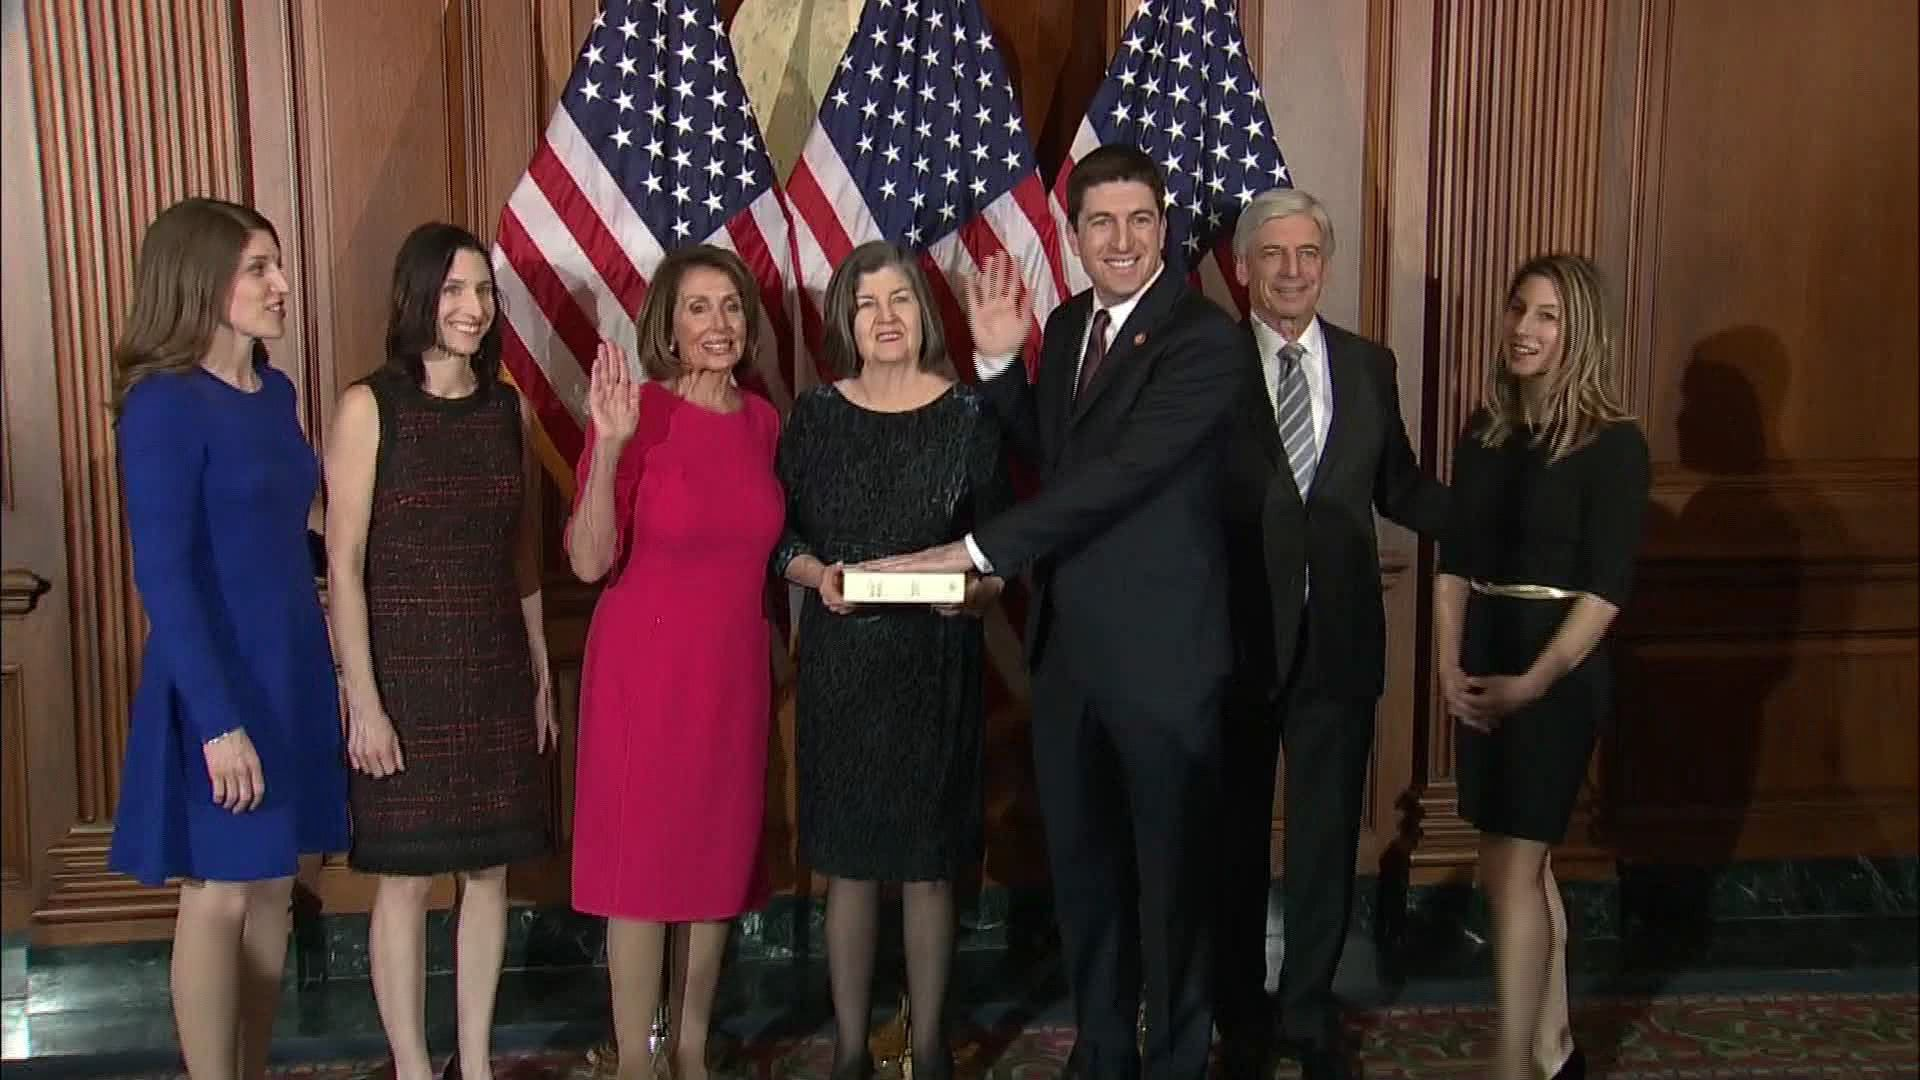 Bryan Steil sworn in as Wisconsin's newest congressman